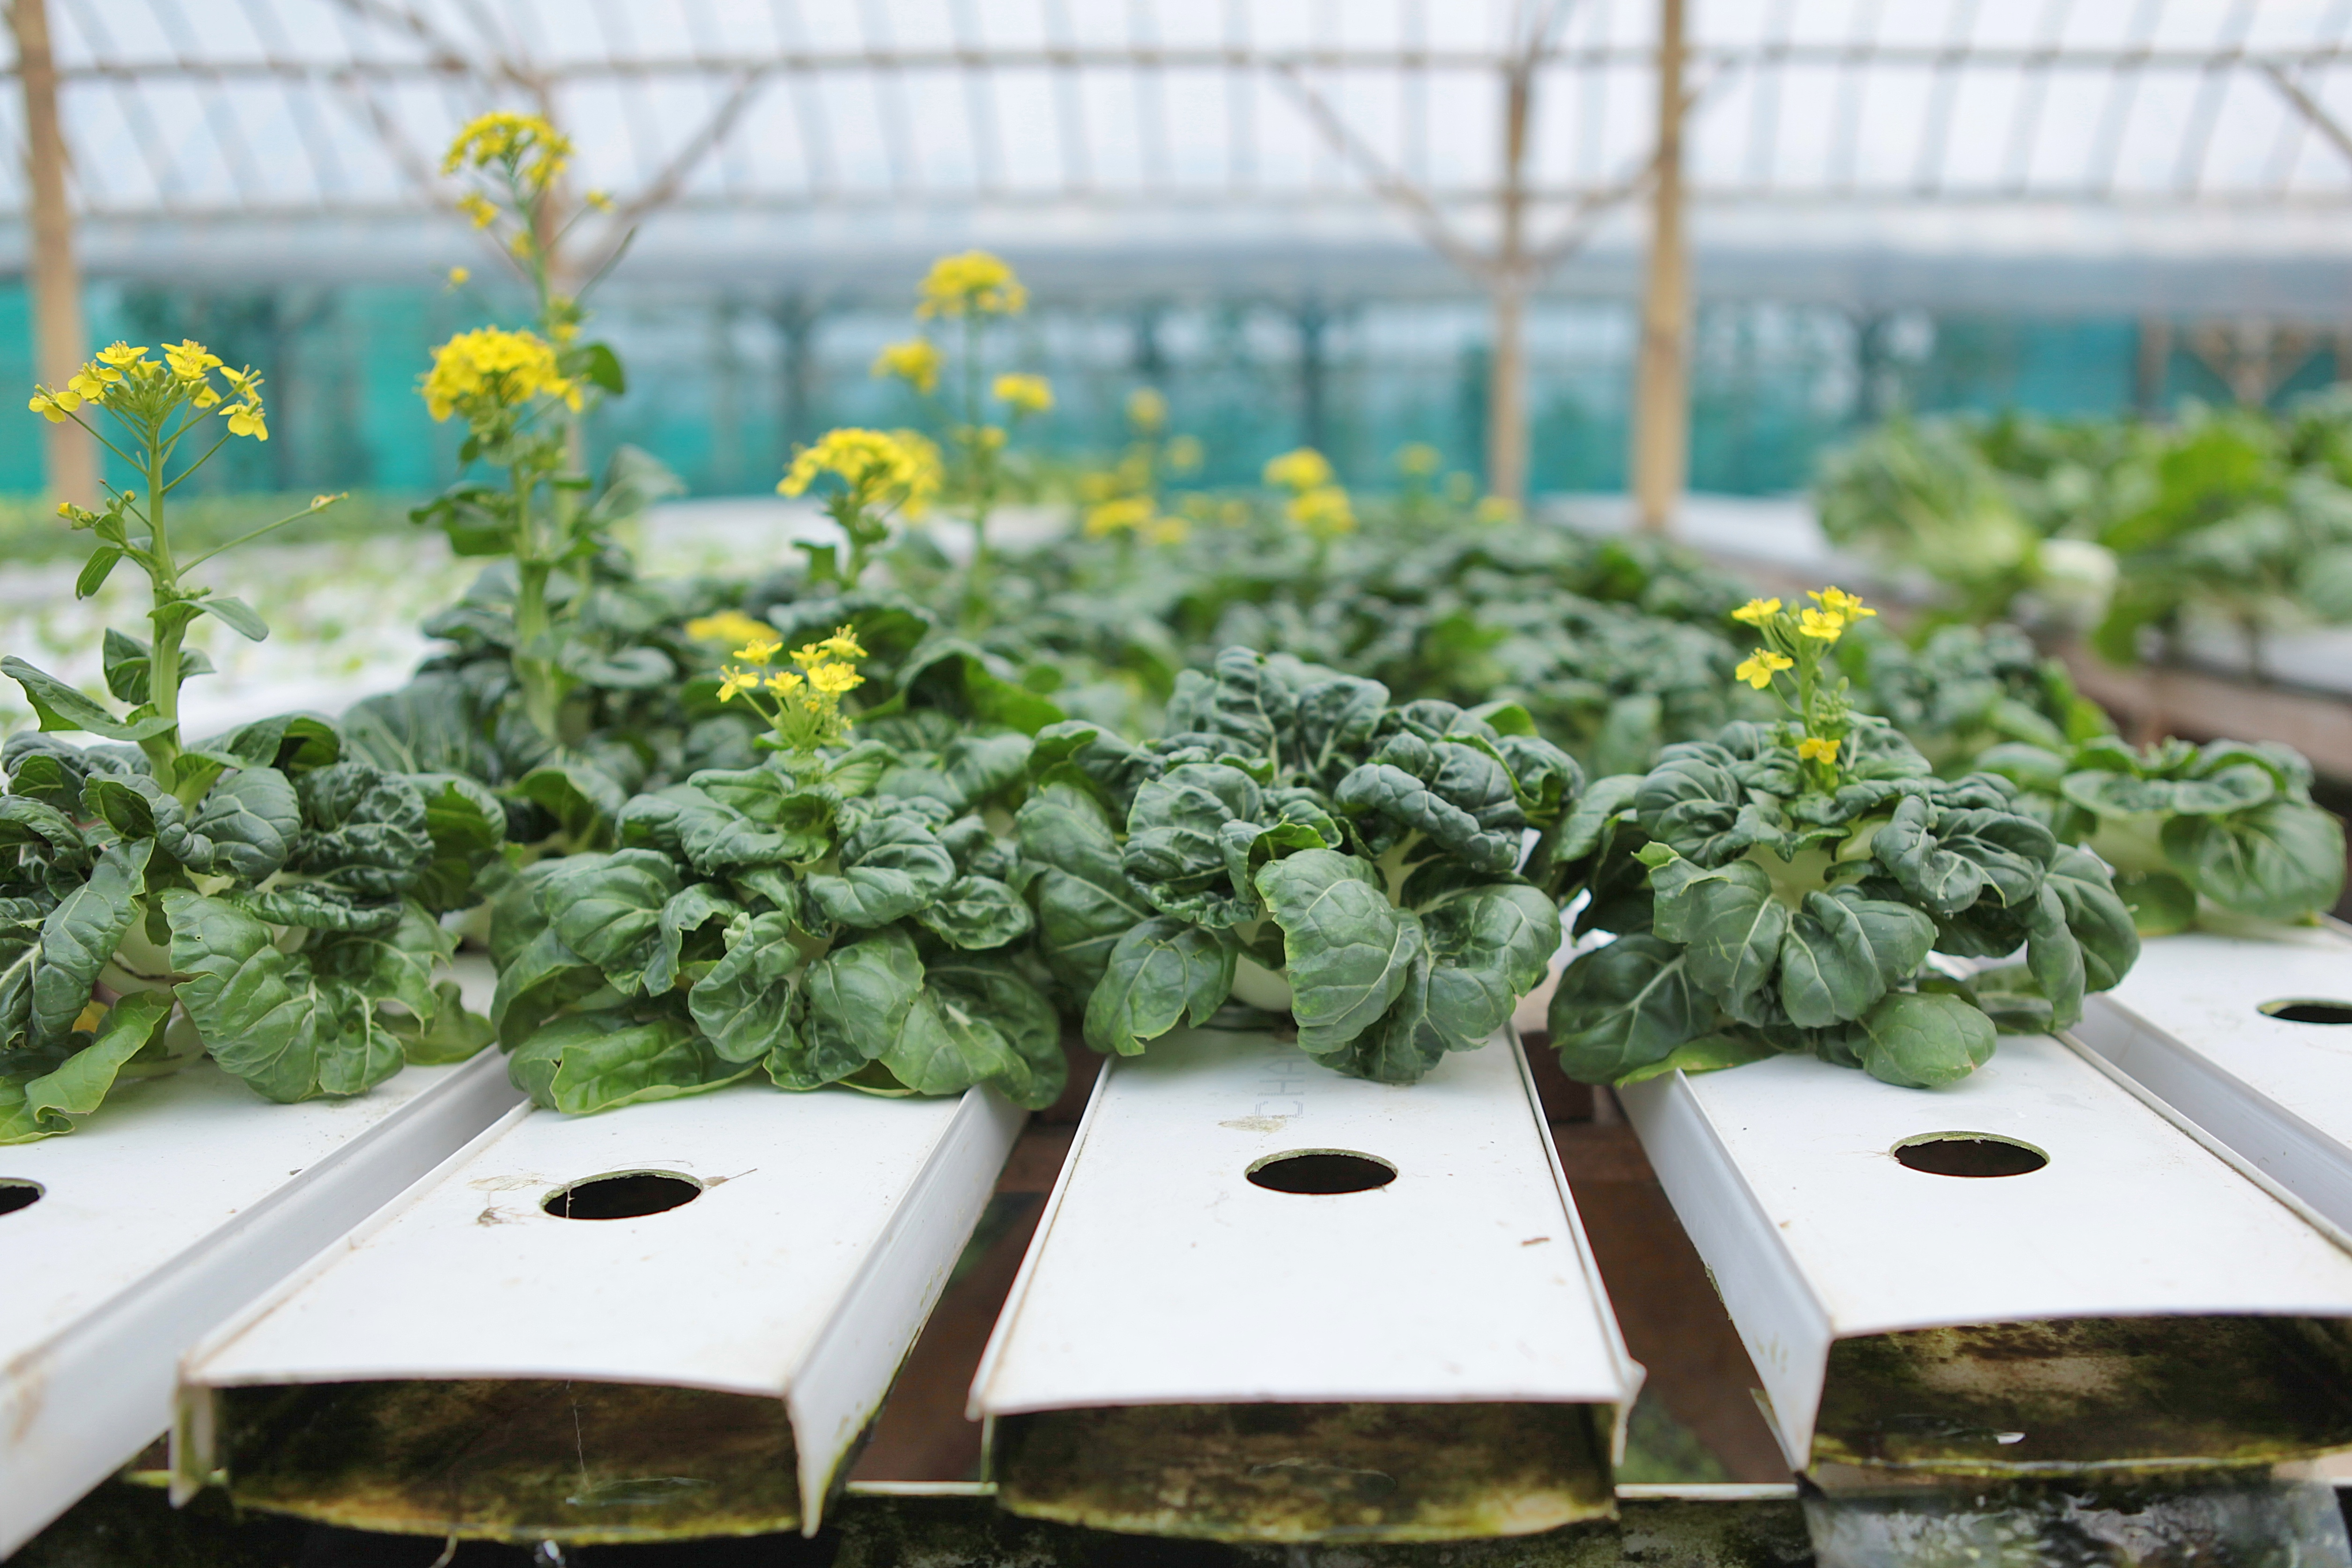 Chinese lettuce seedlings growing in hydroponic farm